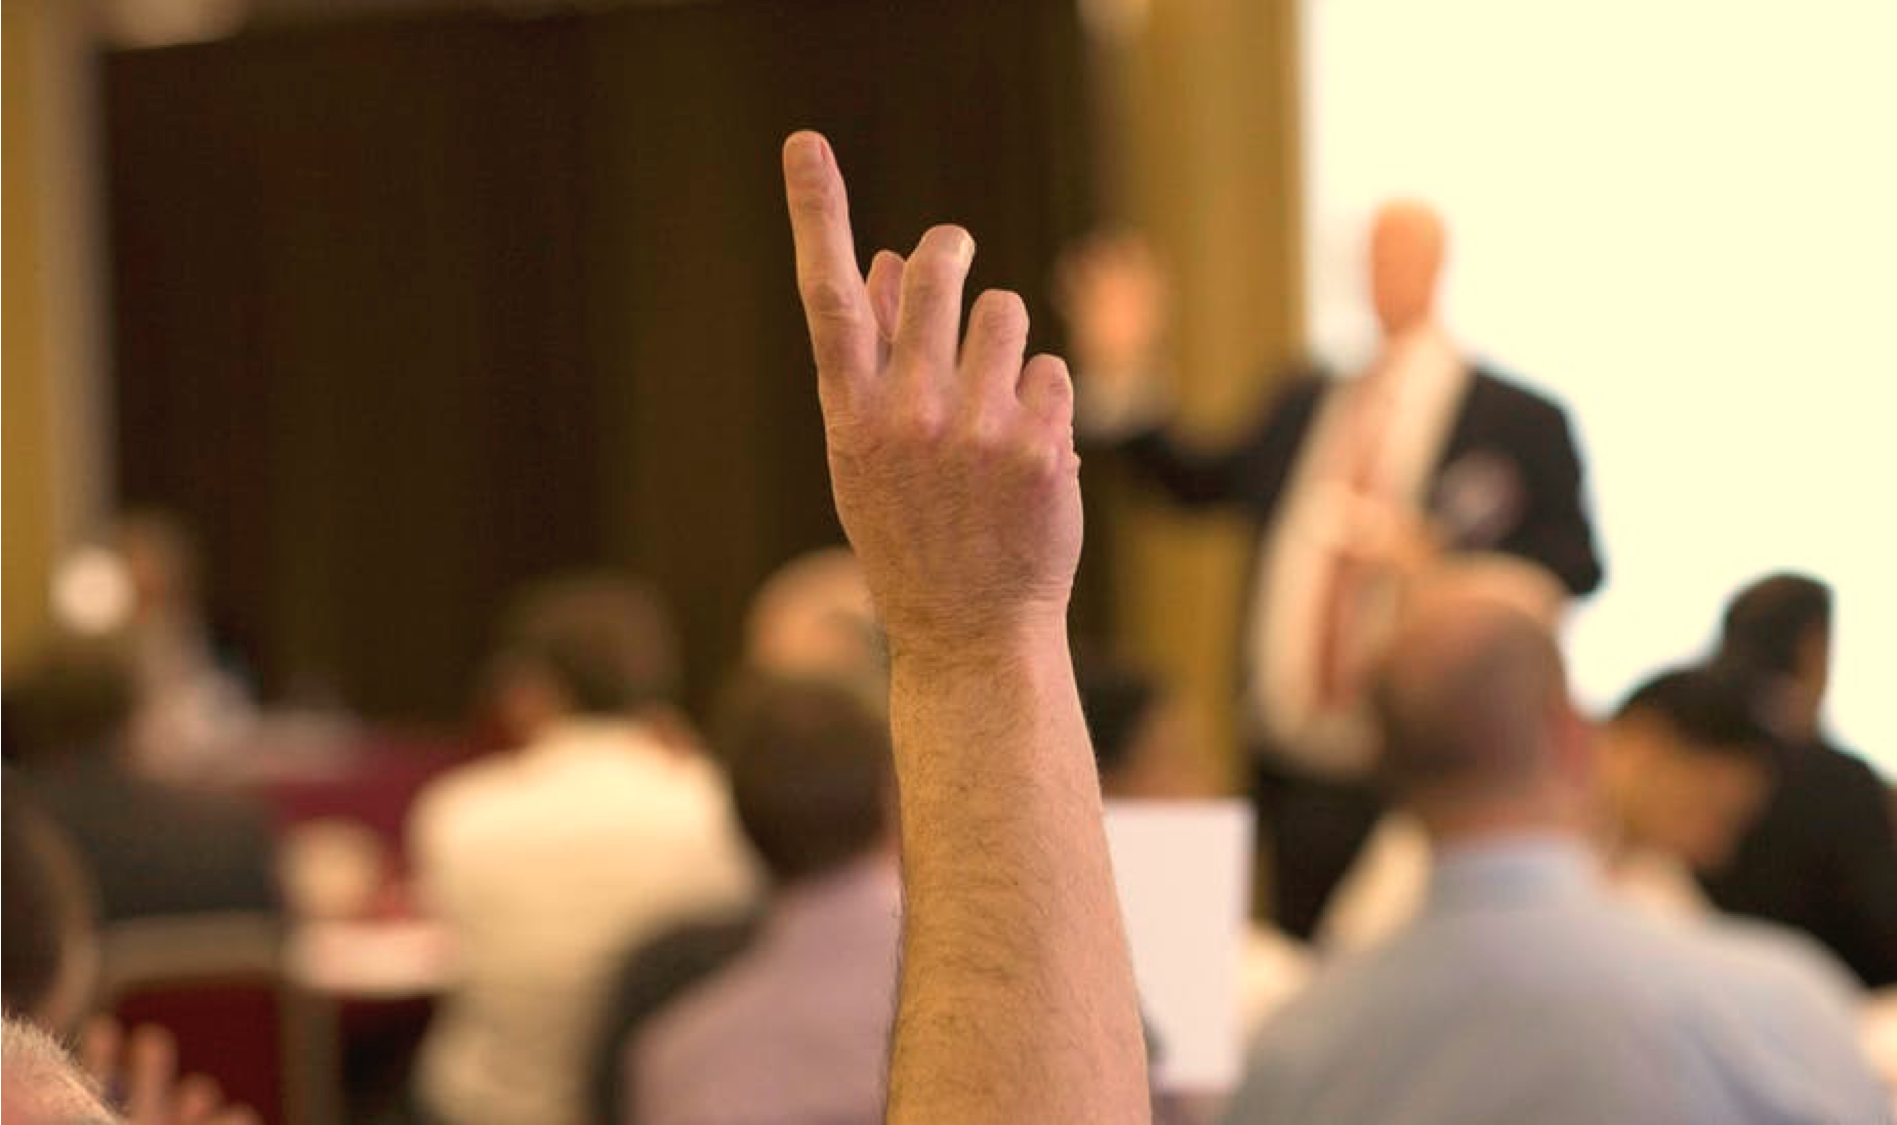 Hand in the air gesturing question at public speaking conference